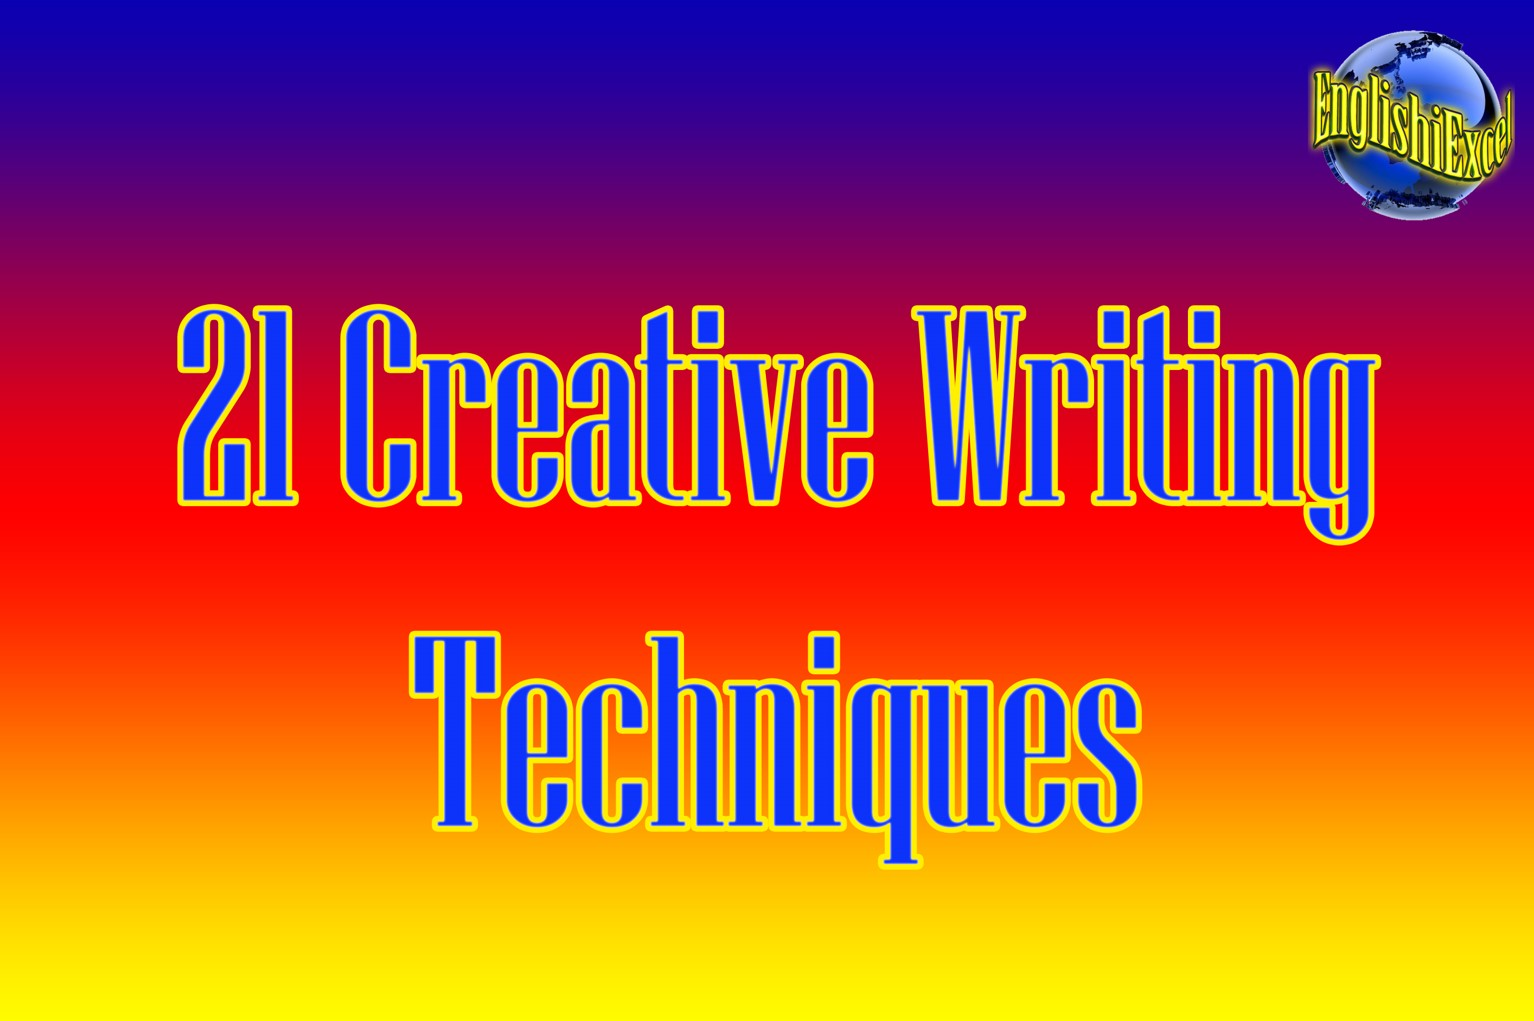 Unit 2: 21 Creative Writing Techniques - https://ed.ted.com/on/yt2WUOhZ